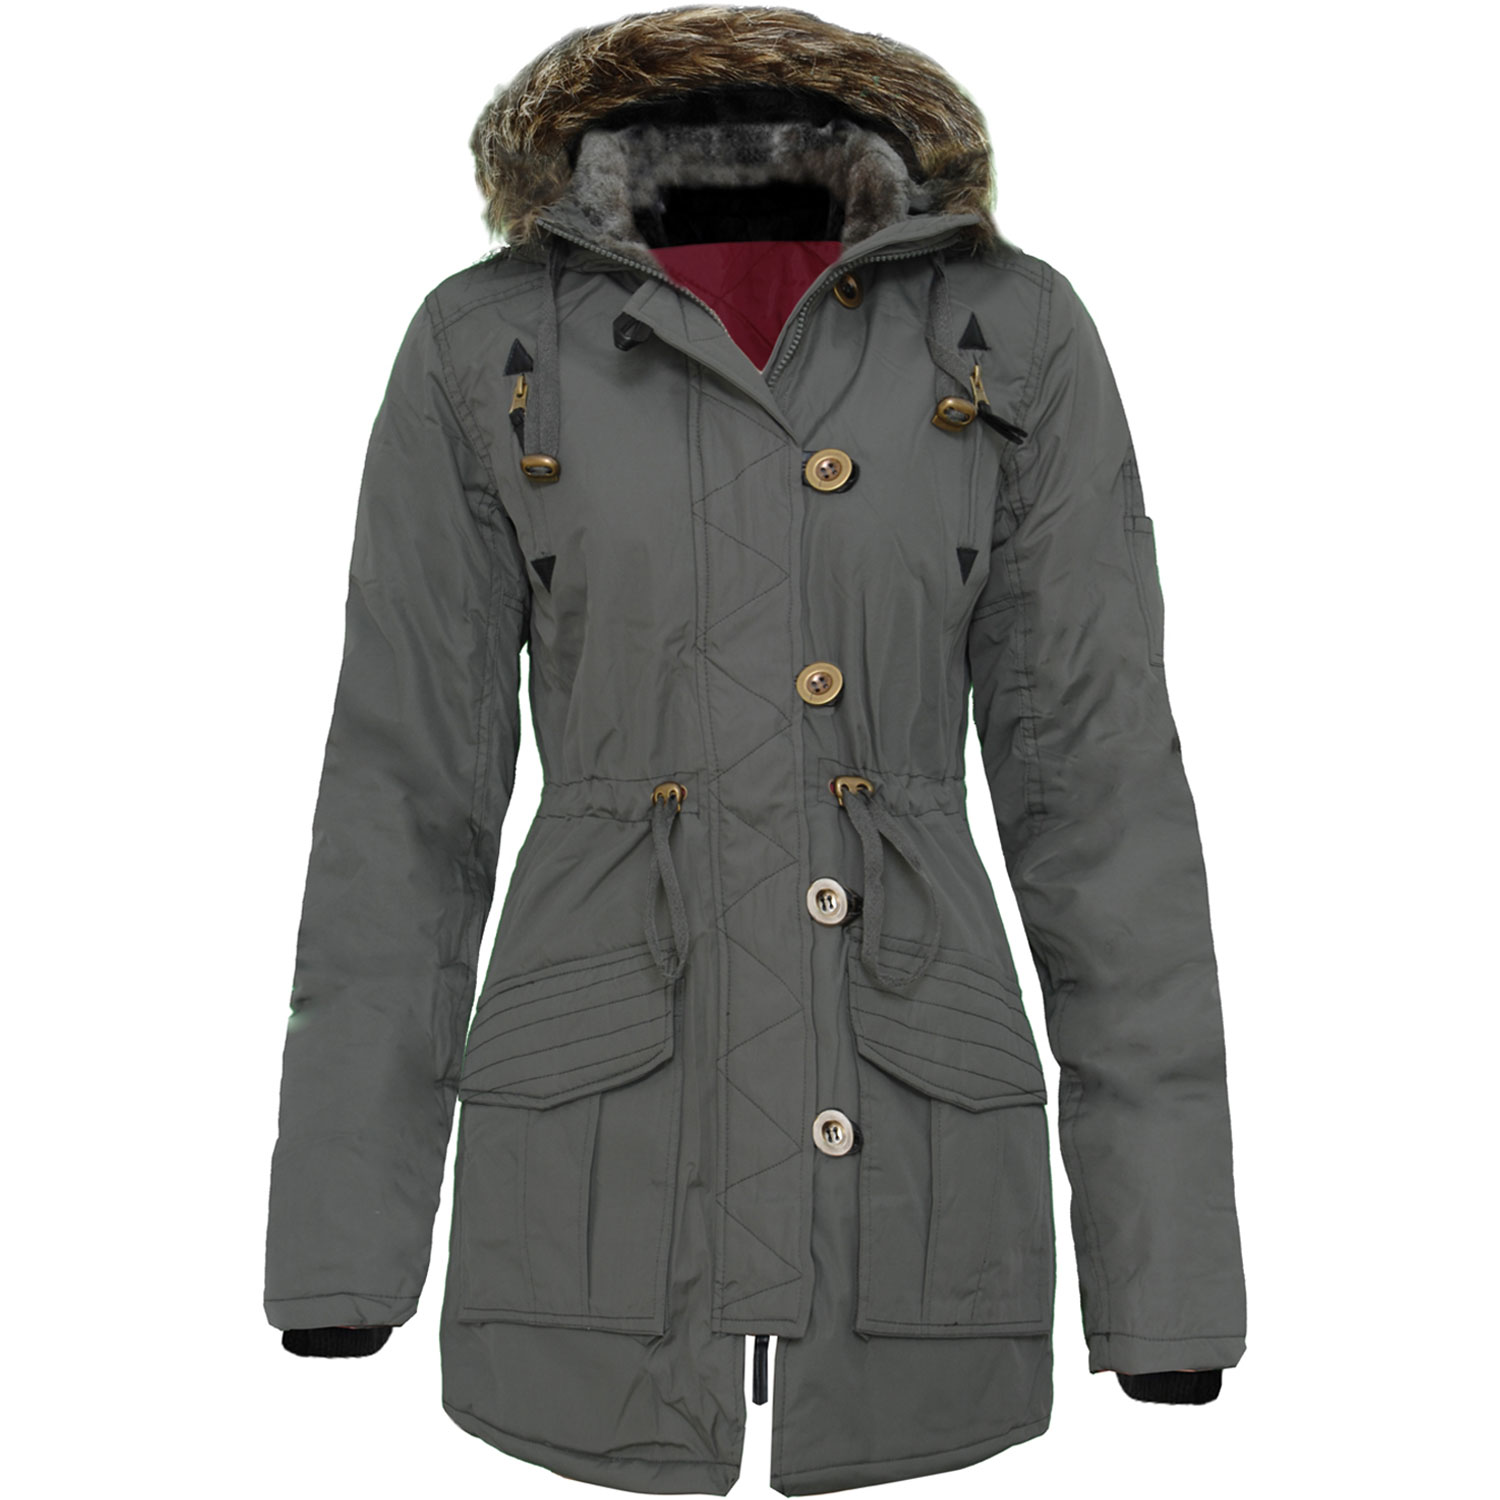 Padded Coats. Showing 48 of results that match your query. Search Product Result. Product - Women Padded Blazer Jacket Long Sleeve Cardigan Zip Up Tops Outwear Biker Coat Motorcycle Overcoat Plus Size. Product - Adidas Womens Slim Padded Coat Black L. Product Image. Price $ Product Title.